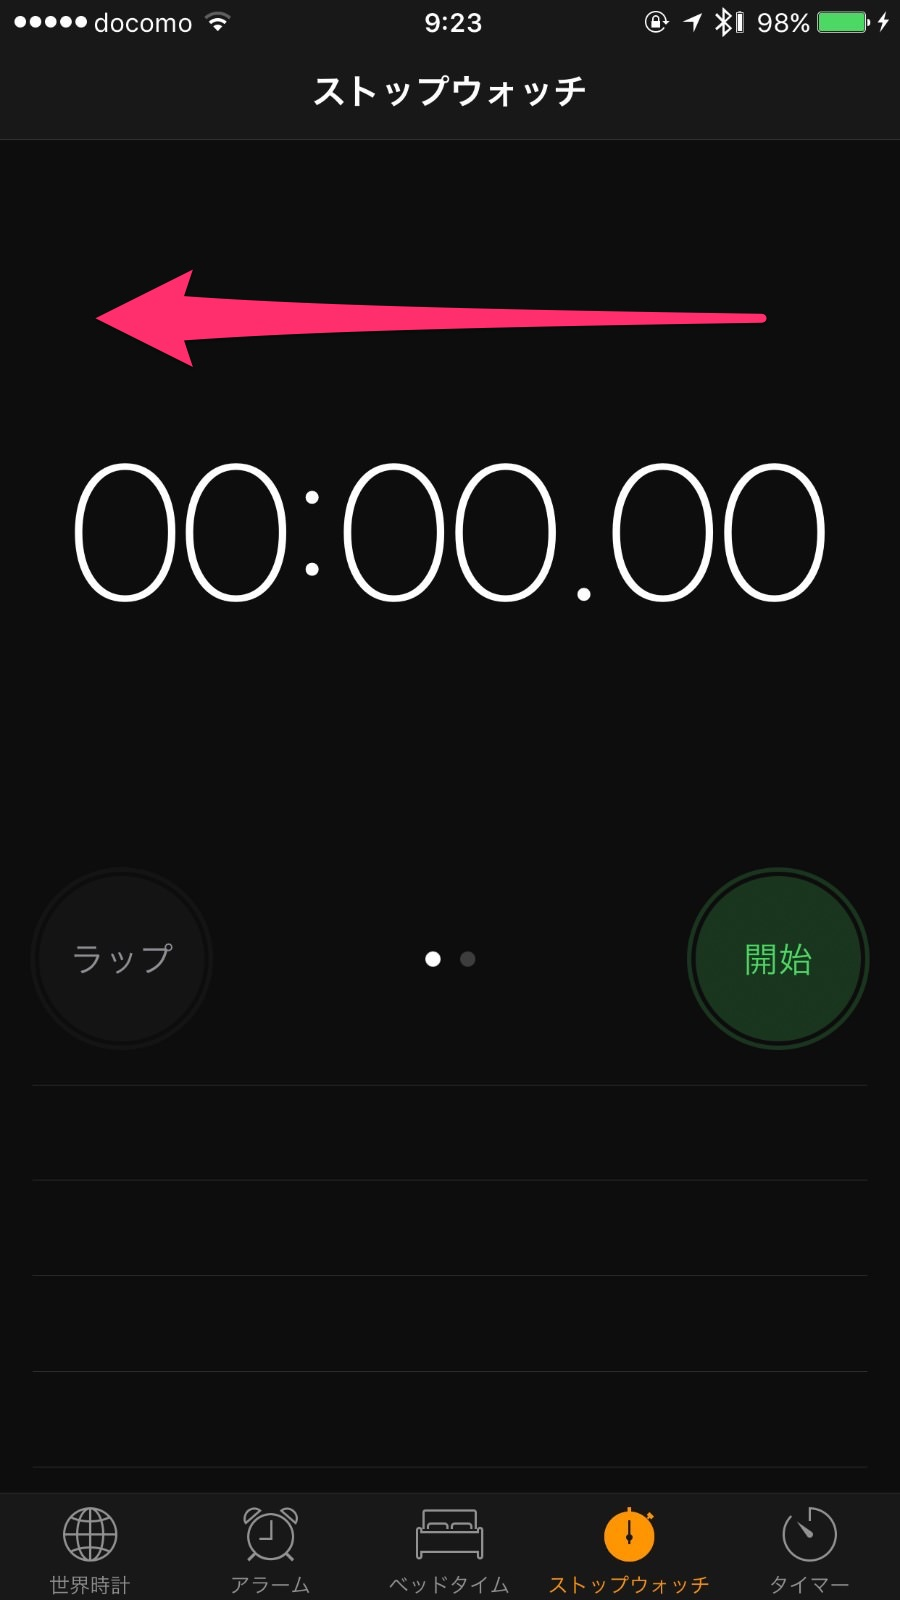 Iphone stop watch 9451